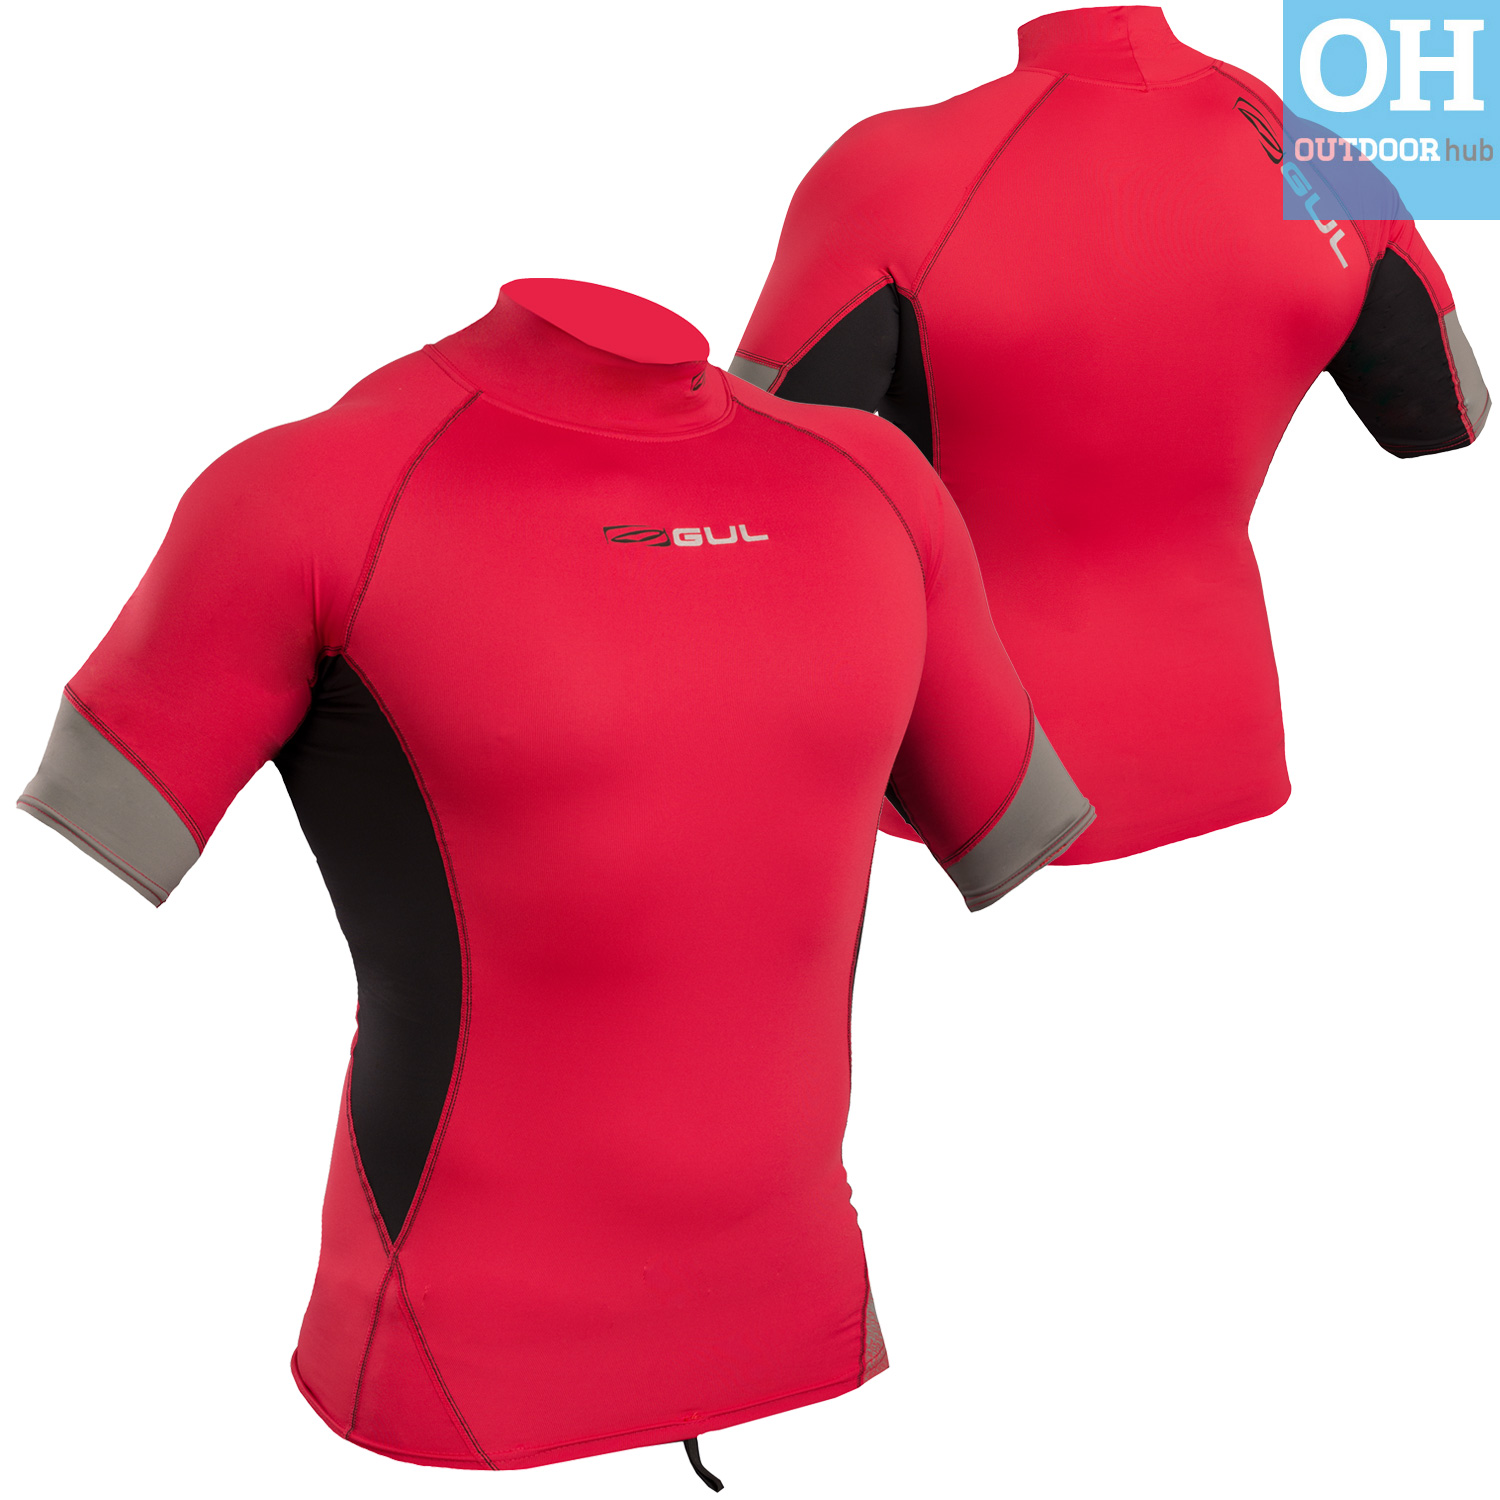 Gul-Xola-Mens-Short-Sleeve-Rash-Guard-Vest-Wetsuit-Top-UV-50-Surf-Swim-Dive thumbnail 34